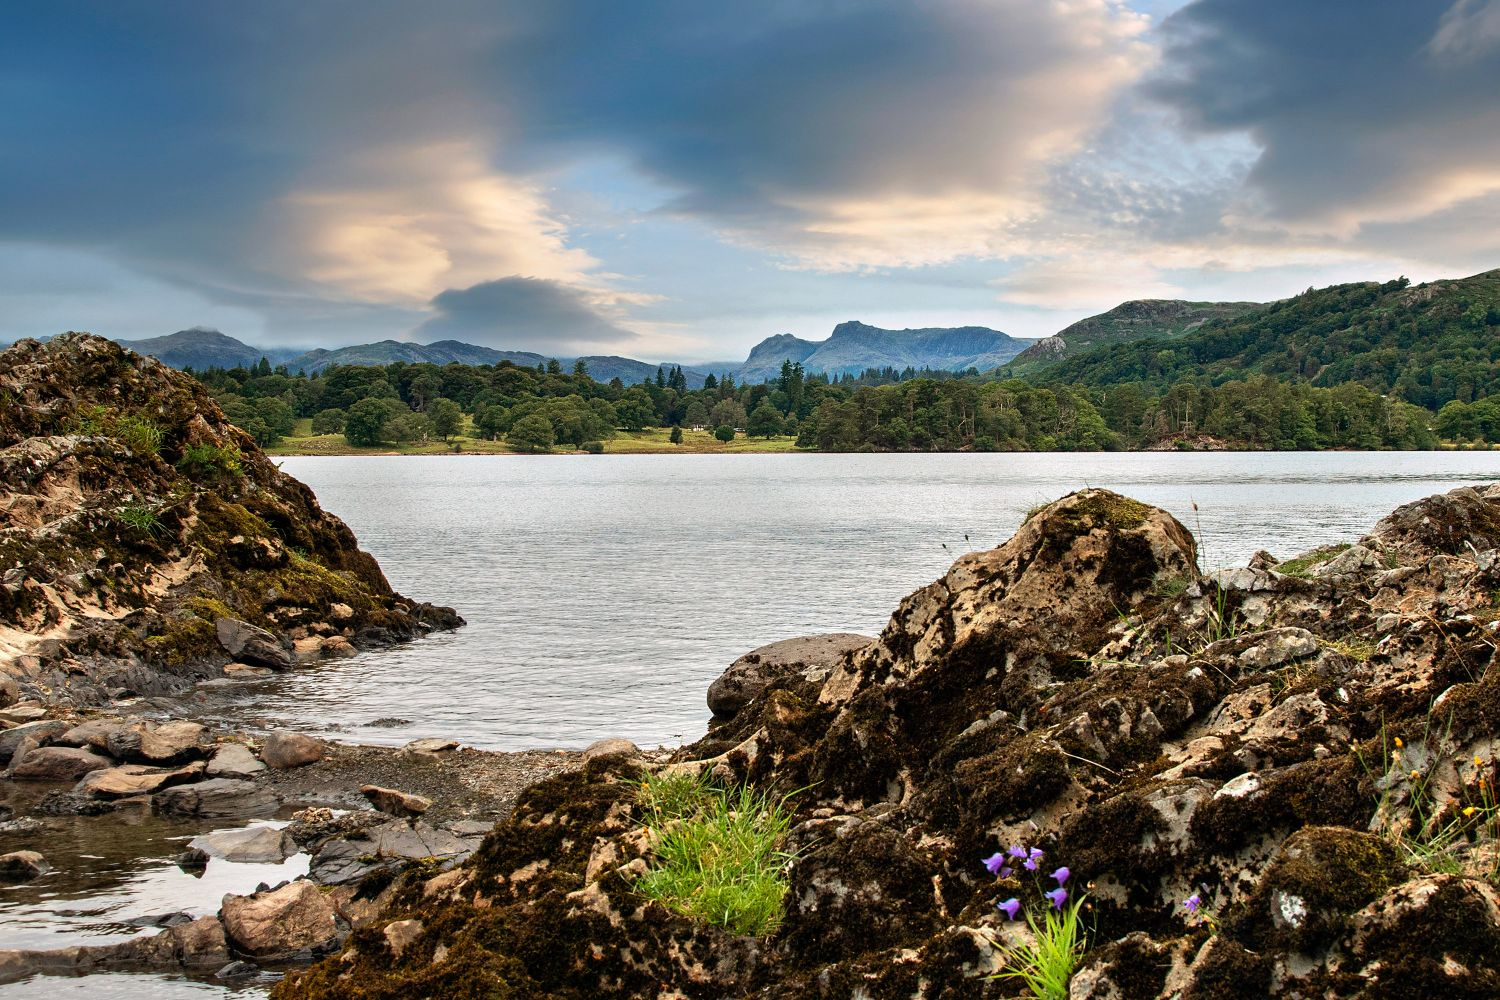 The Langdales from Lake Windermere by Martin Lawrence